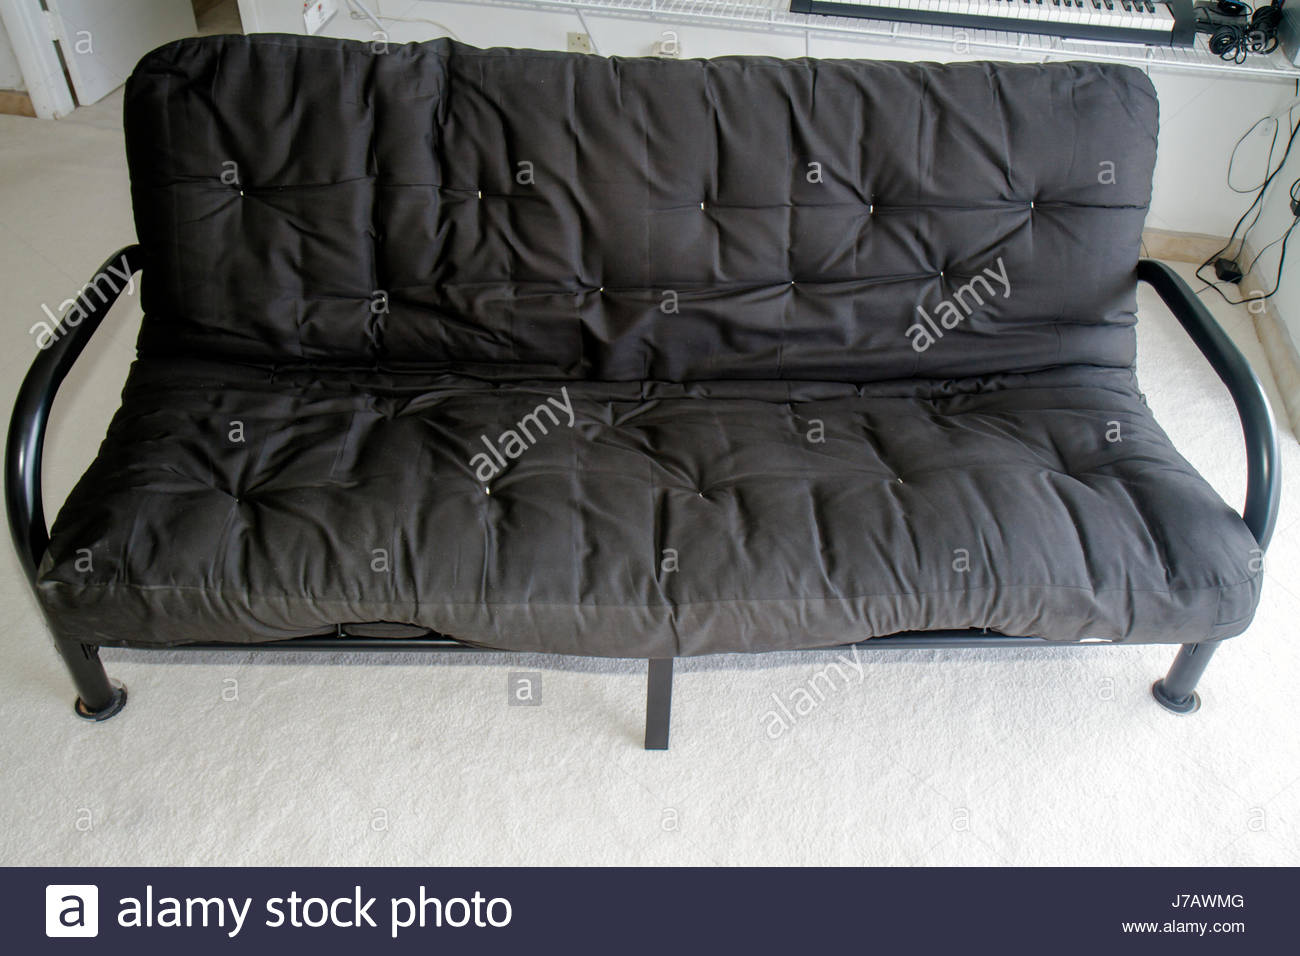 miami beach florida futon sofa bed black mattress stock photo